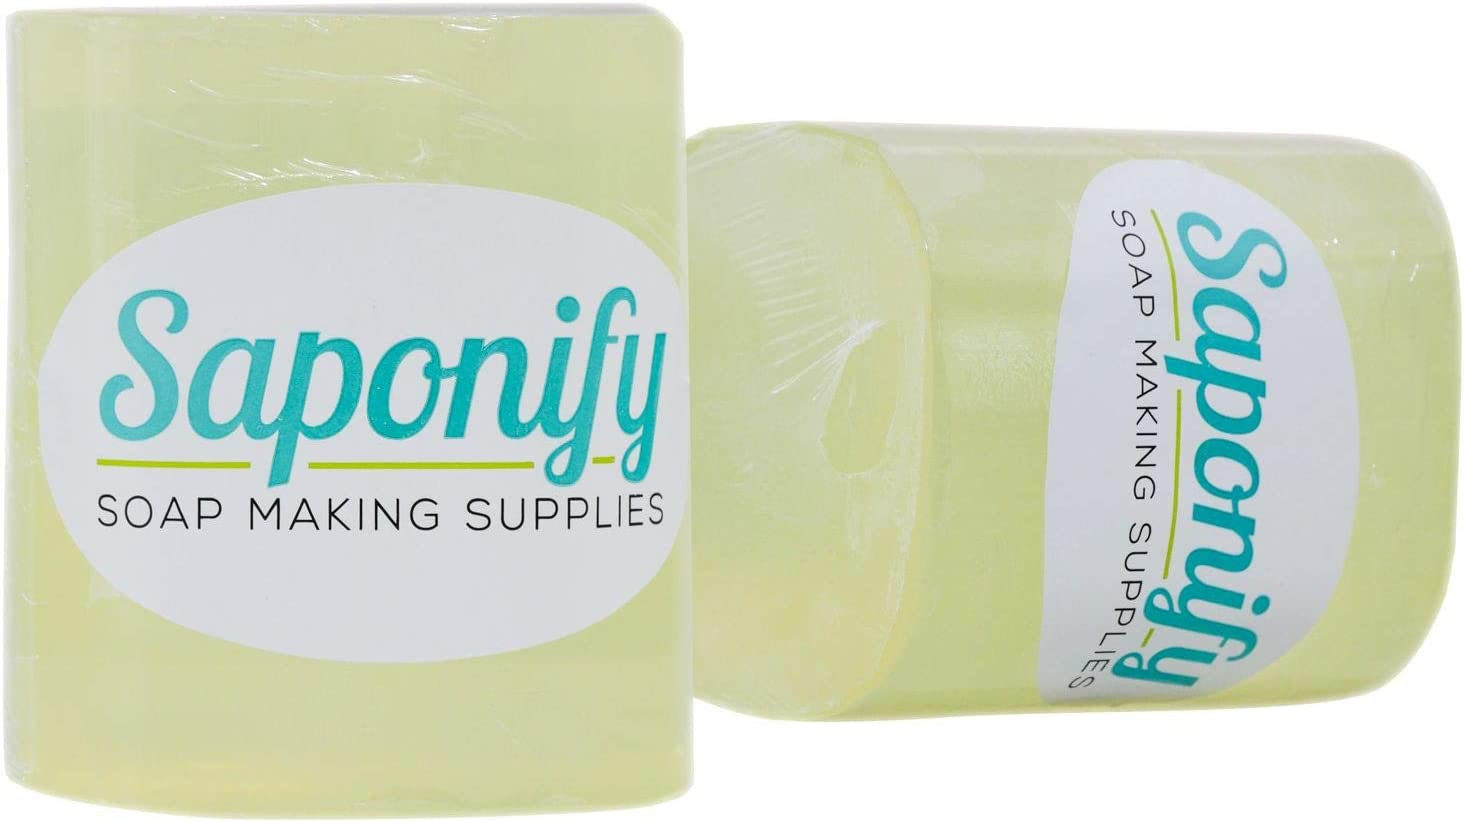 Make Your Own Gentle Glycerine Soaps with Our Professional Grade Base Saponify 2LB Colloidal Oatmeal Melt and Pour Soap Base